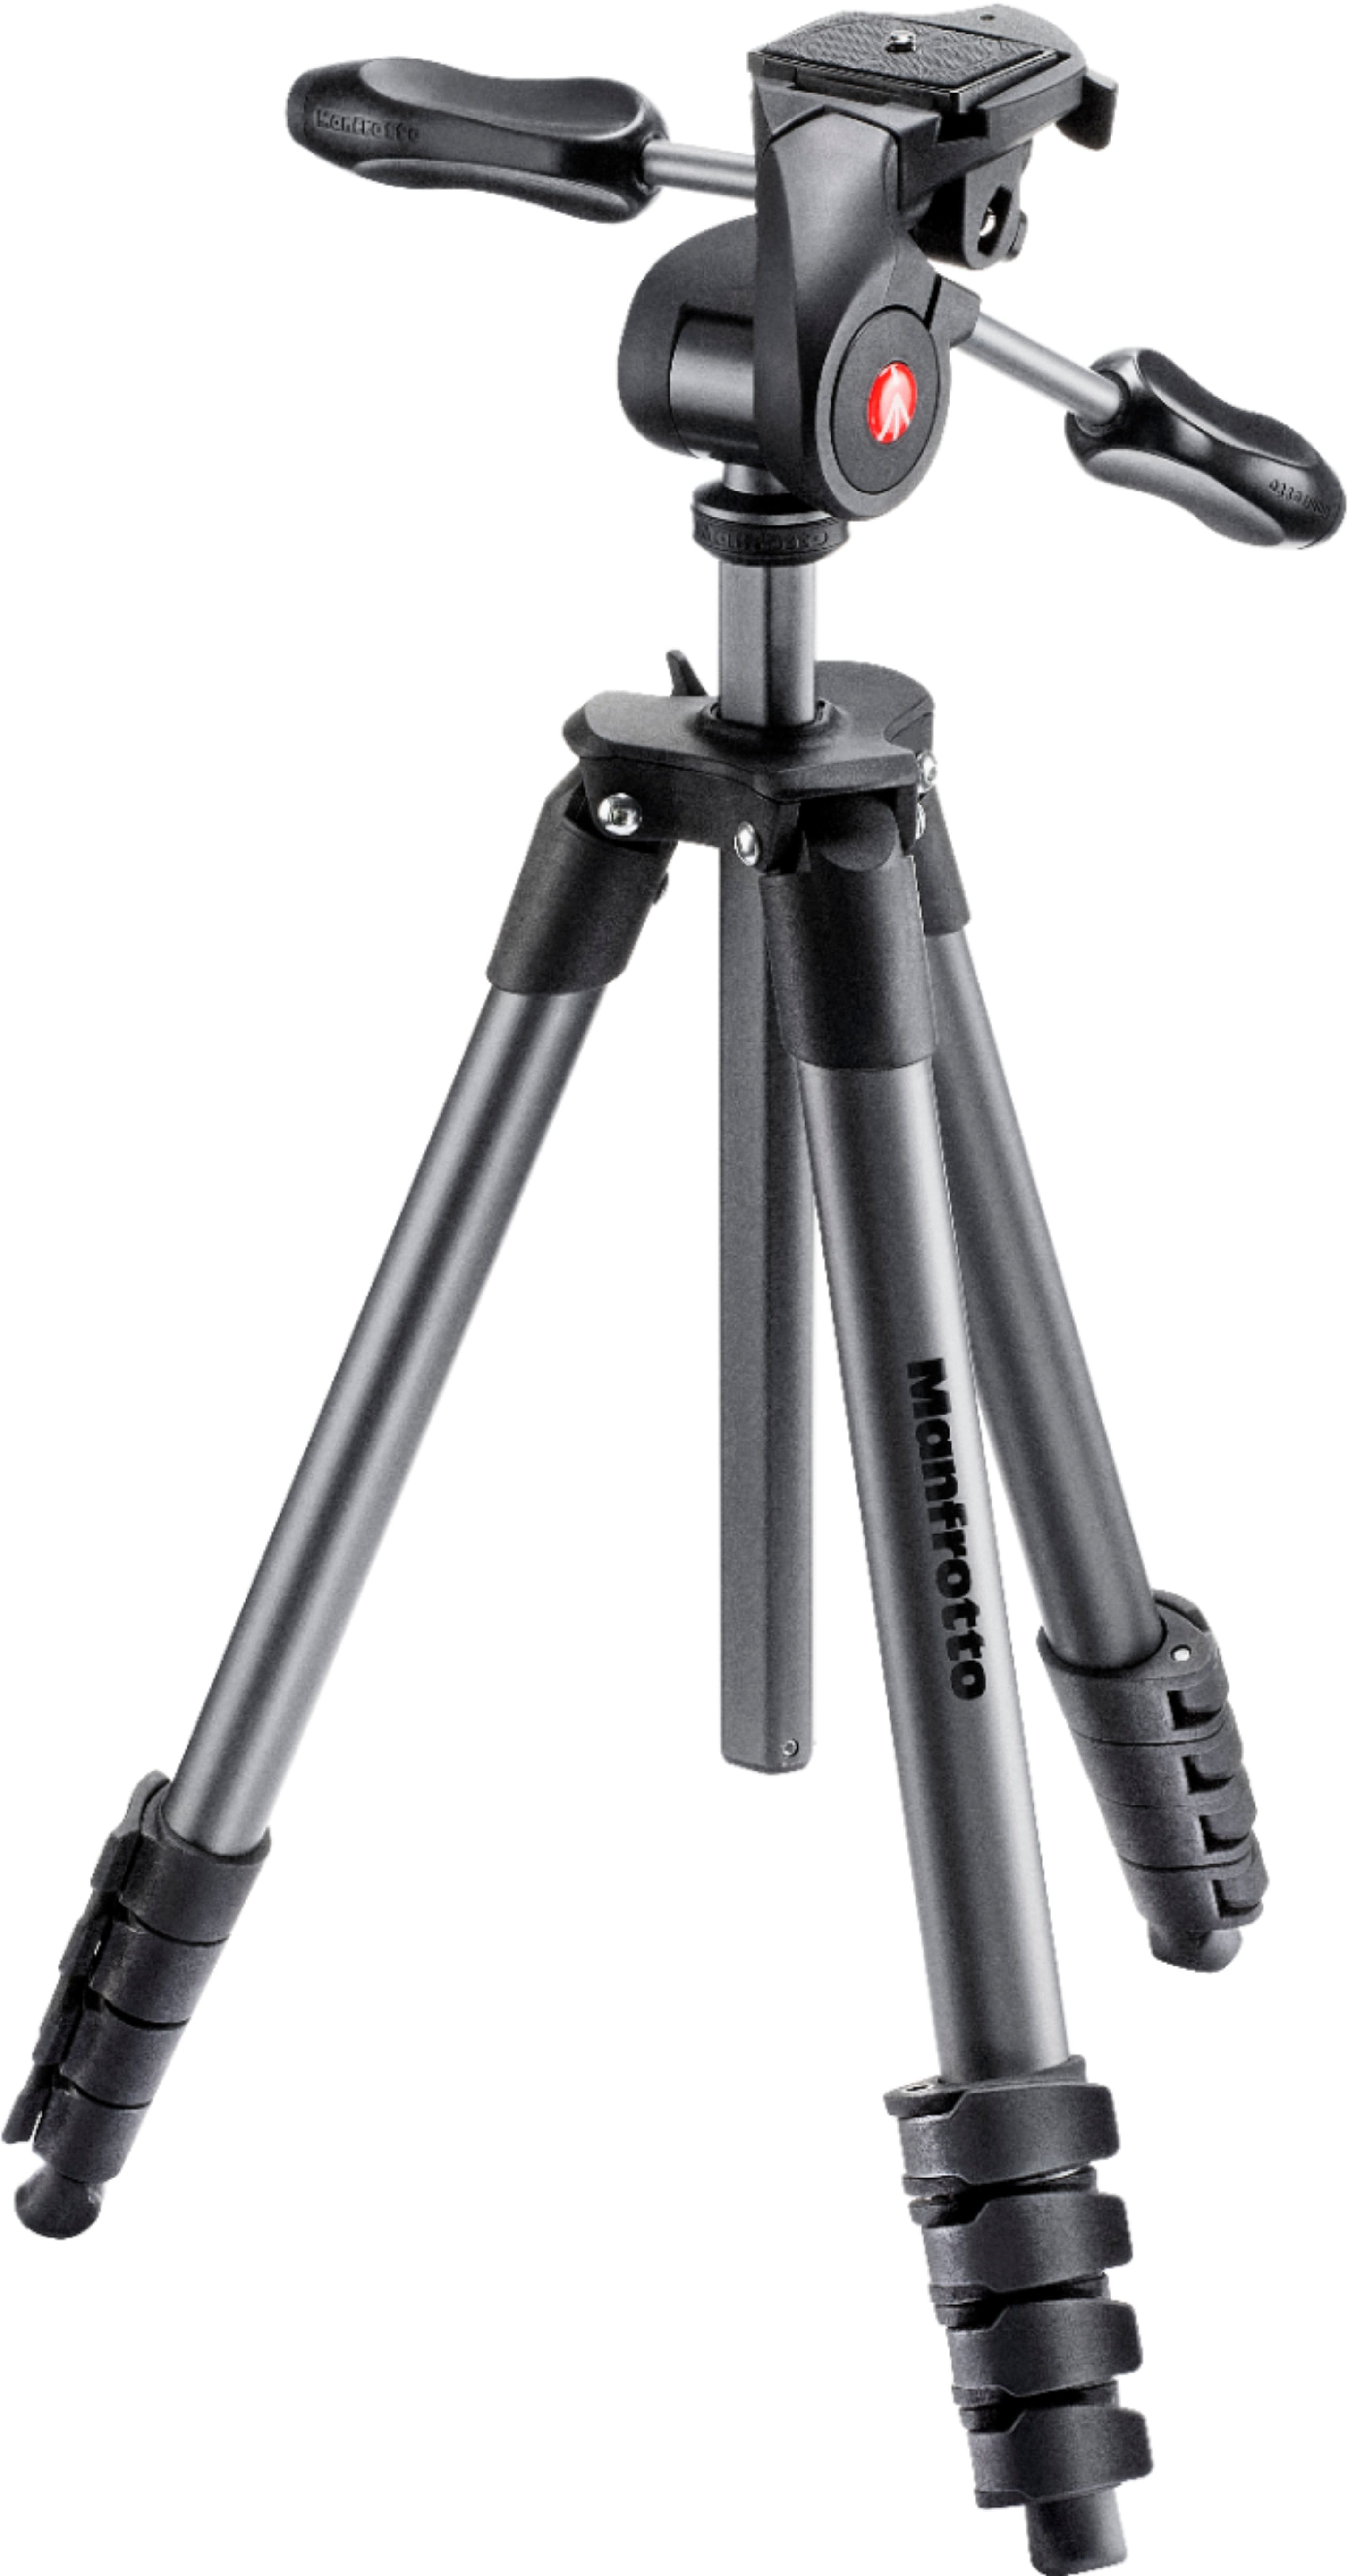 "Manfrotto Compact Advanced Smart 65"" Tripod Black MKSCOMPACTADV-BK - Best Buy $60"